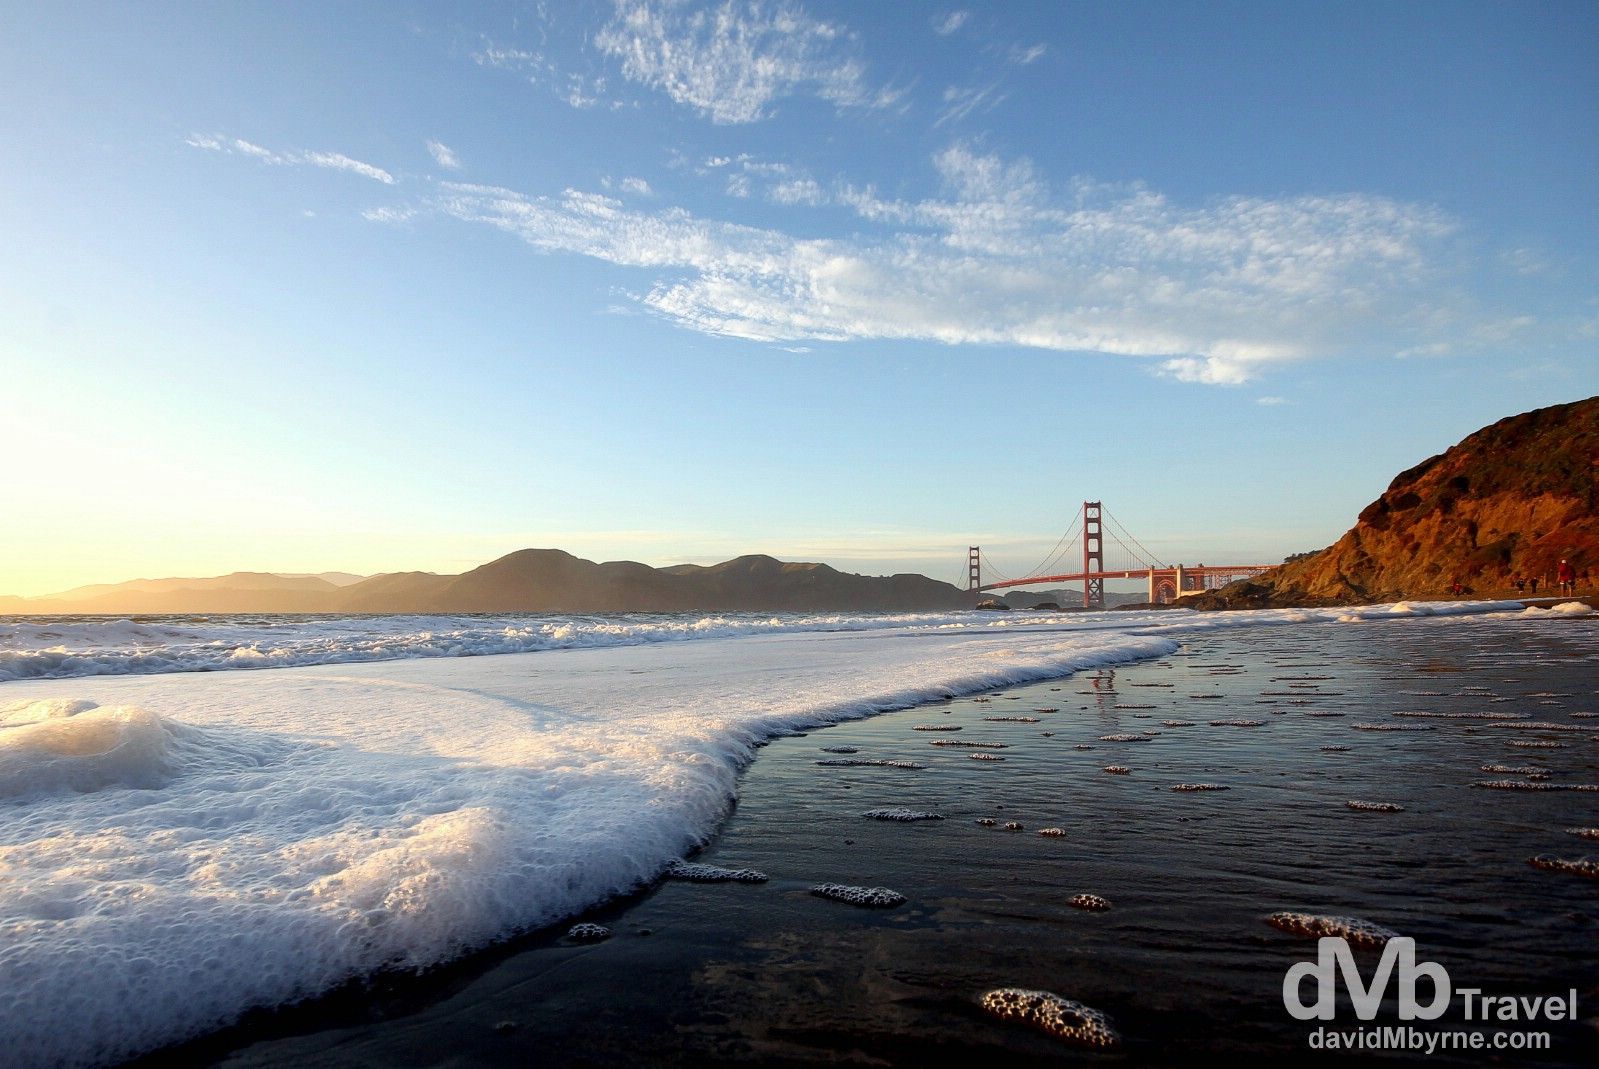 Nearing sunset on Baker Beach, San Francisco, California, USA. April 10th 2013.